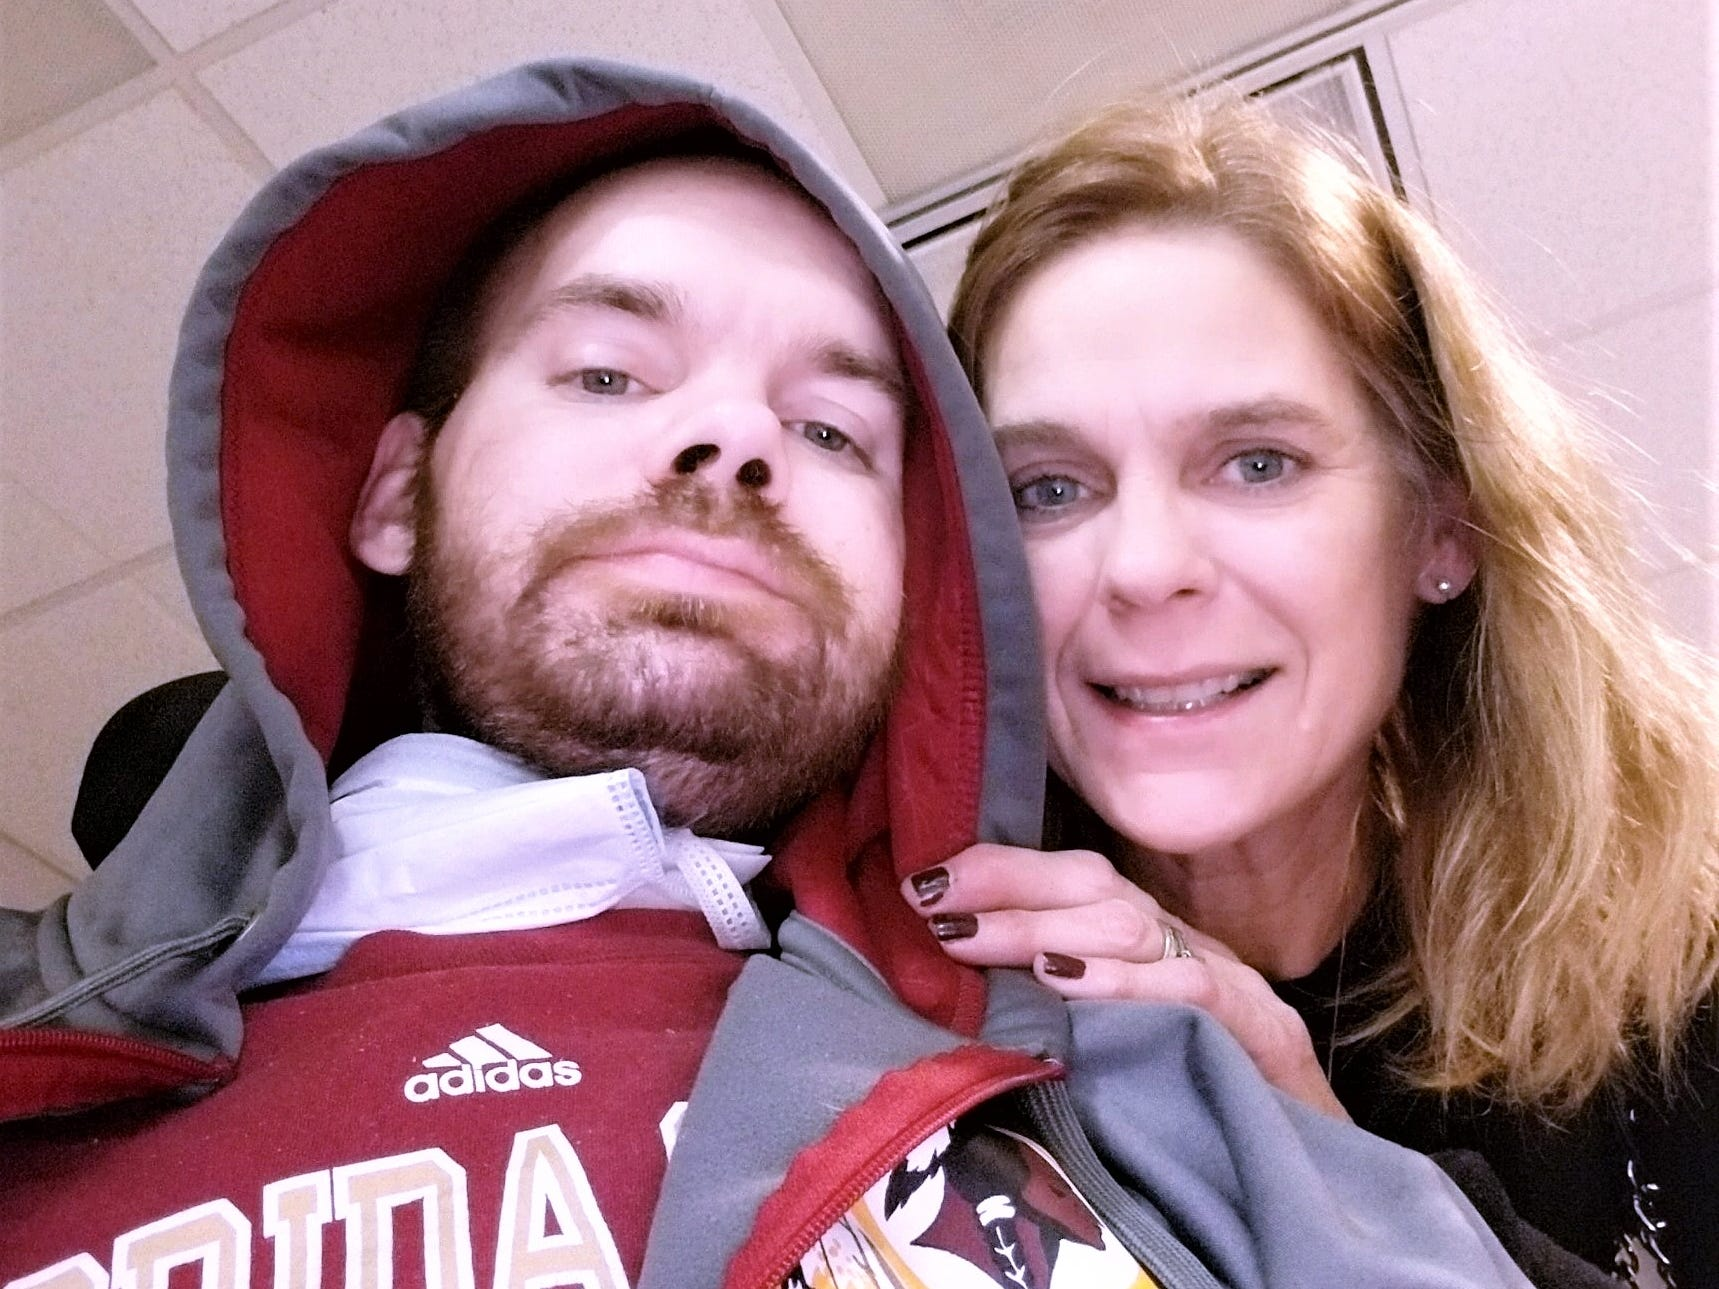 Stacy Evans of Horseheads devotes much of her time to caring for her son Alan Ramsay, who has muscular dystrophy.